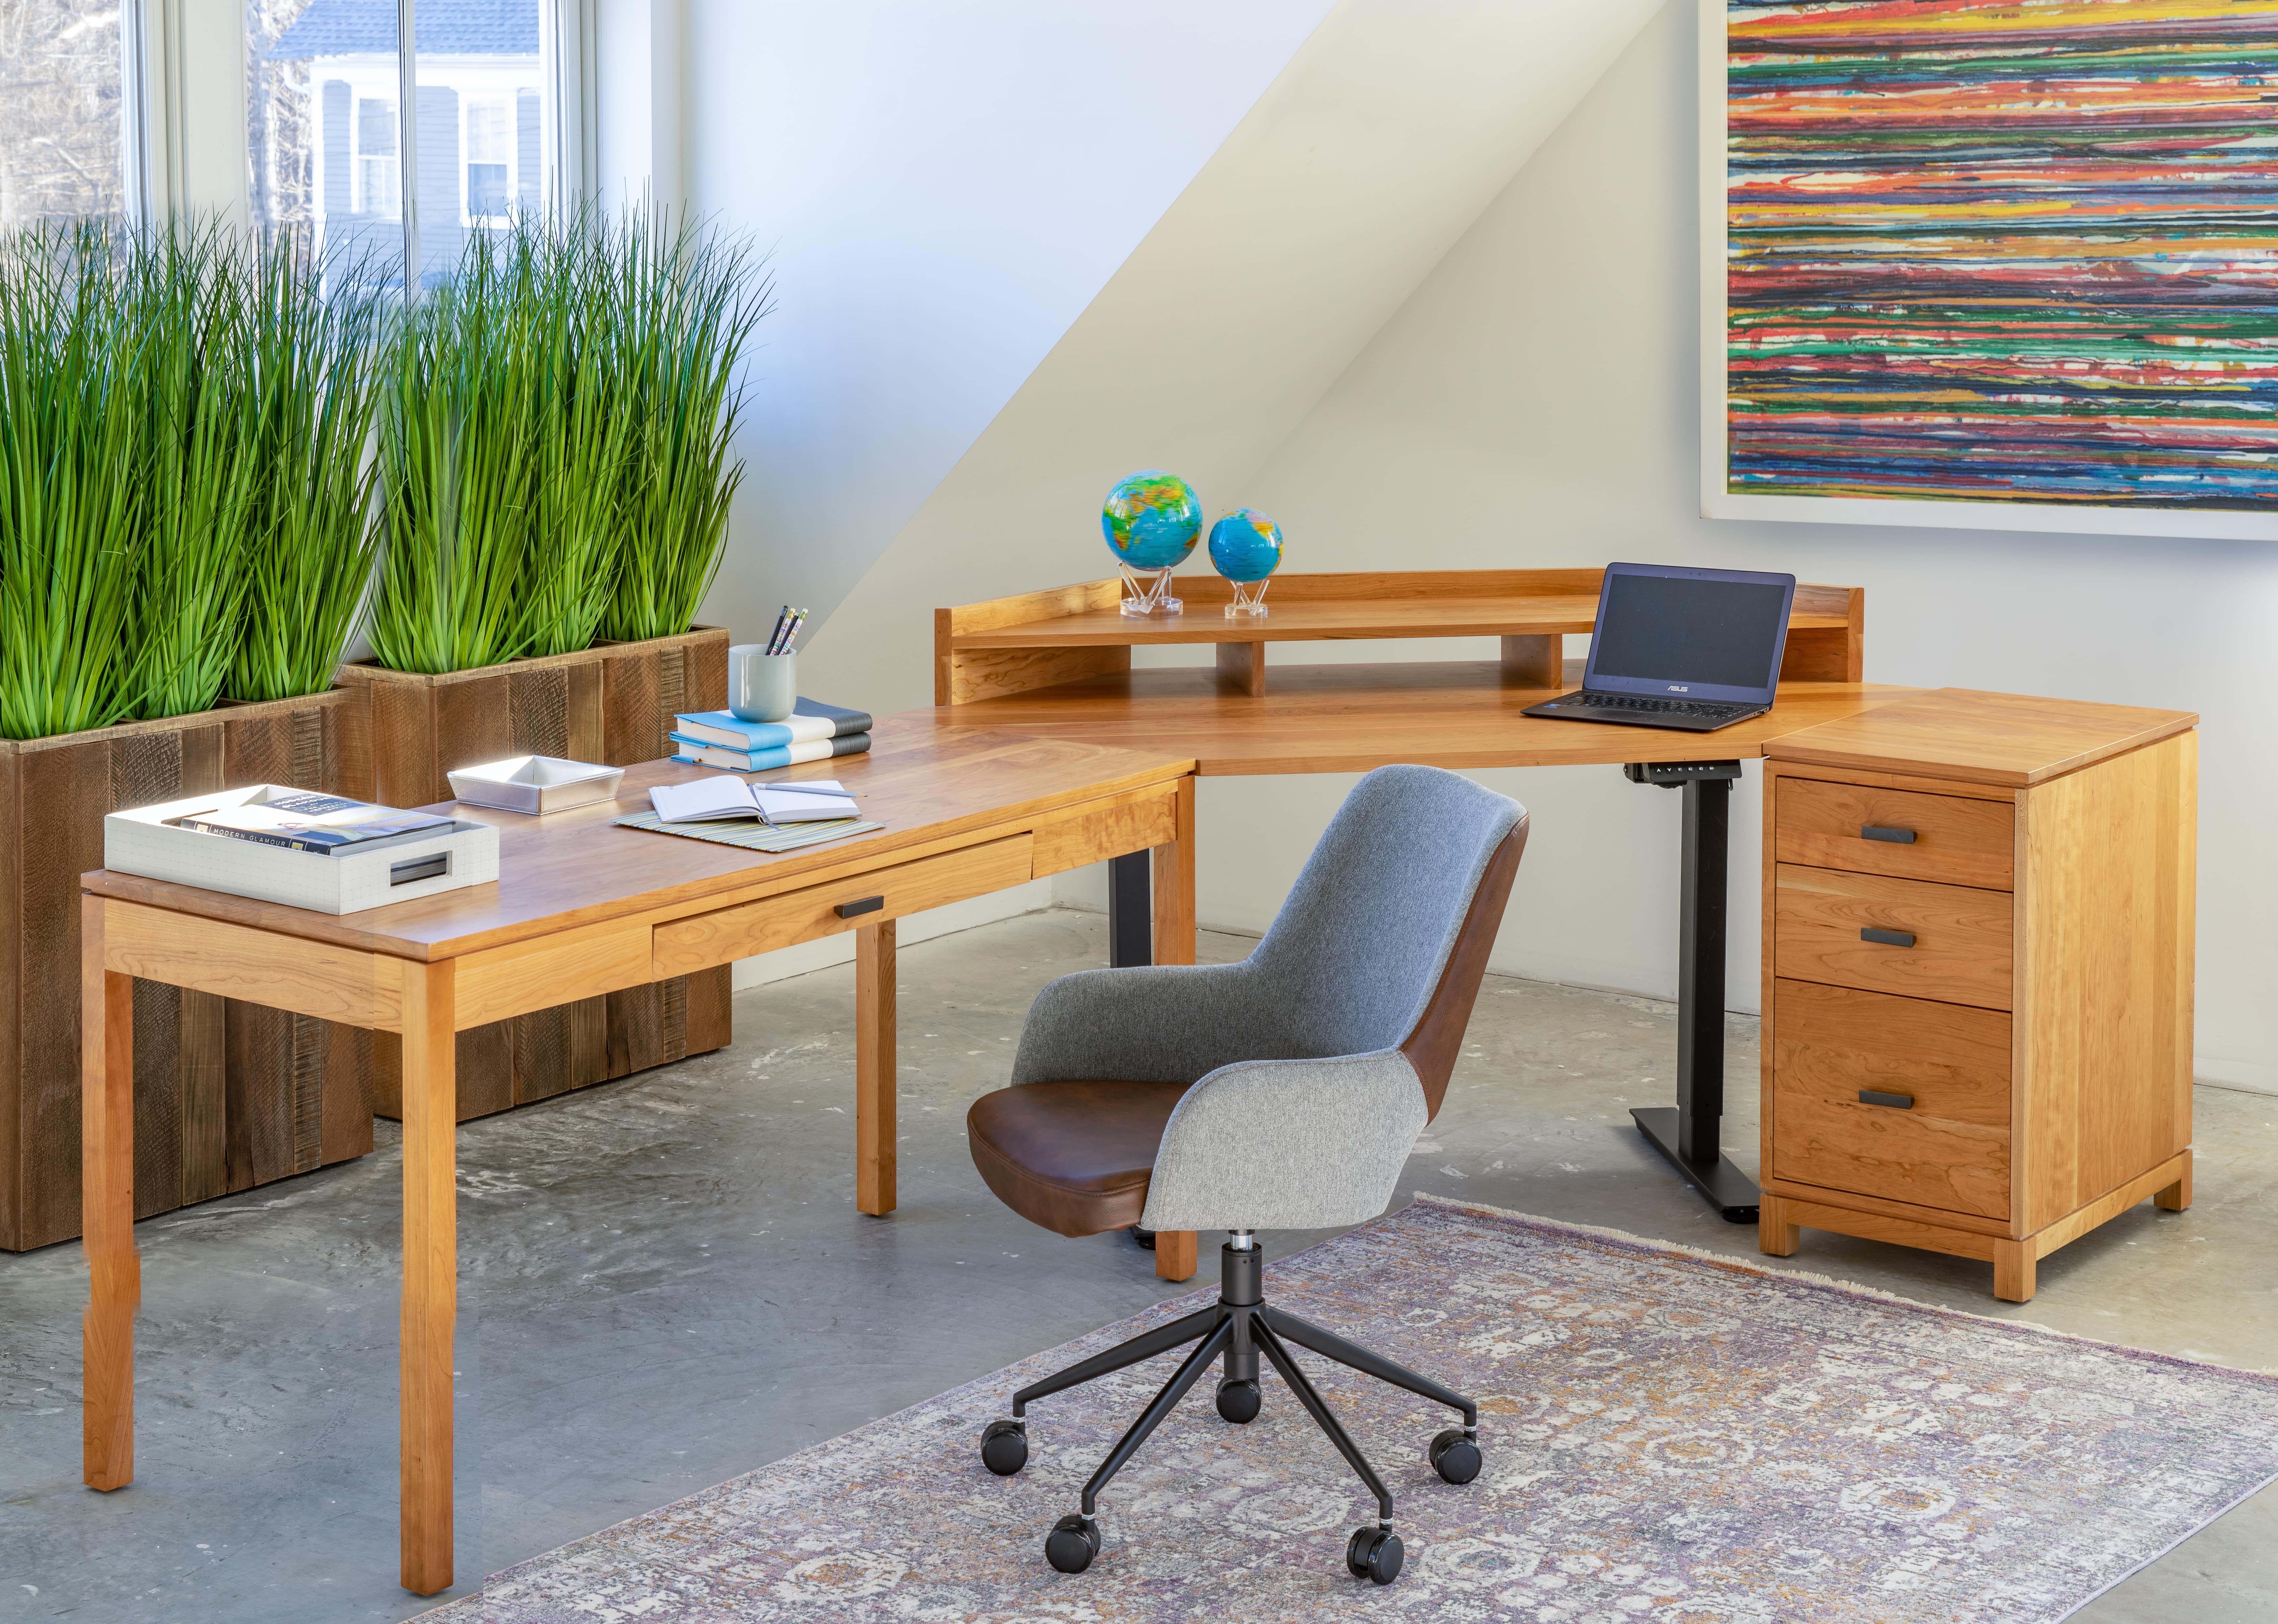 Circle Furniture How Much Does It Cost To Furnish A Home Office